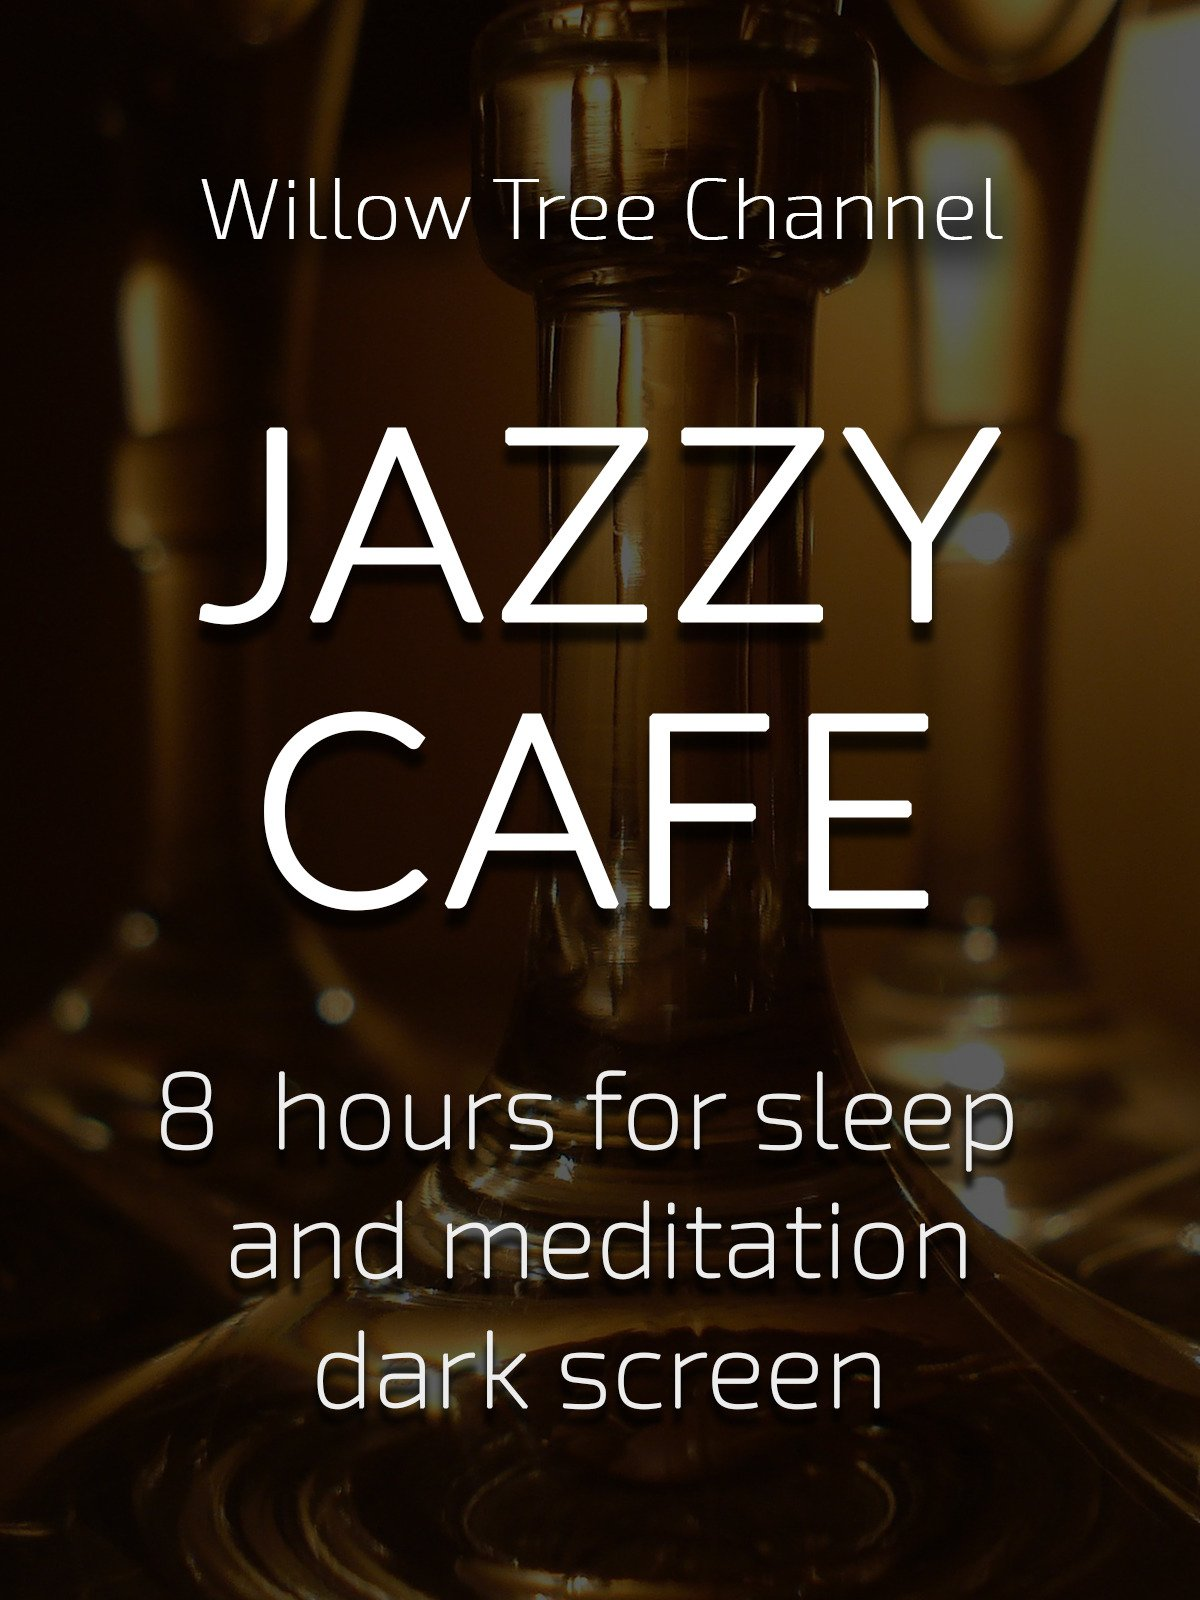 Jazzy cafe, 8 hours for Sleep and Meditation, dark screen